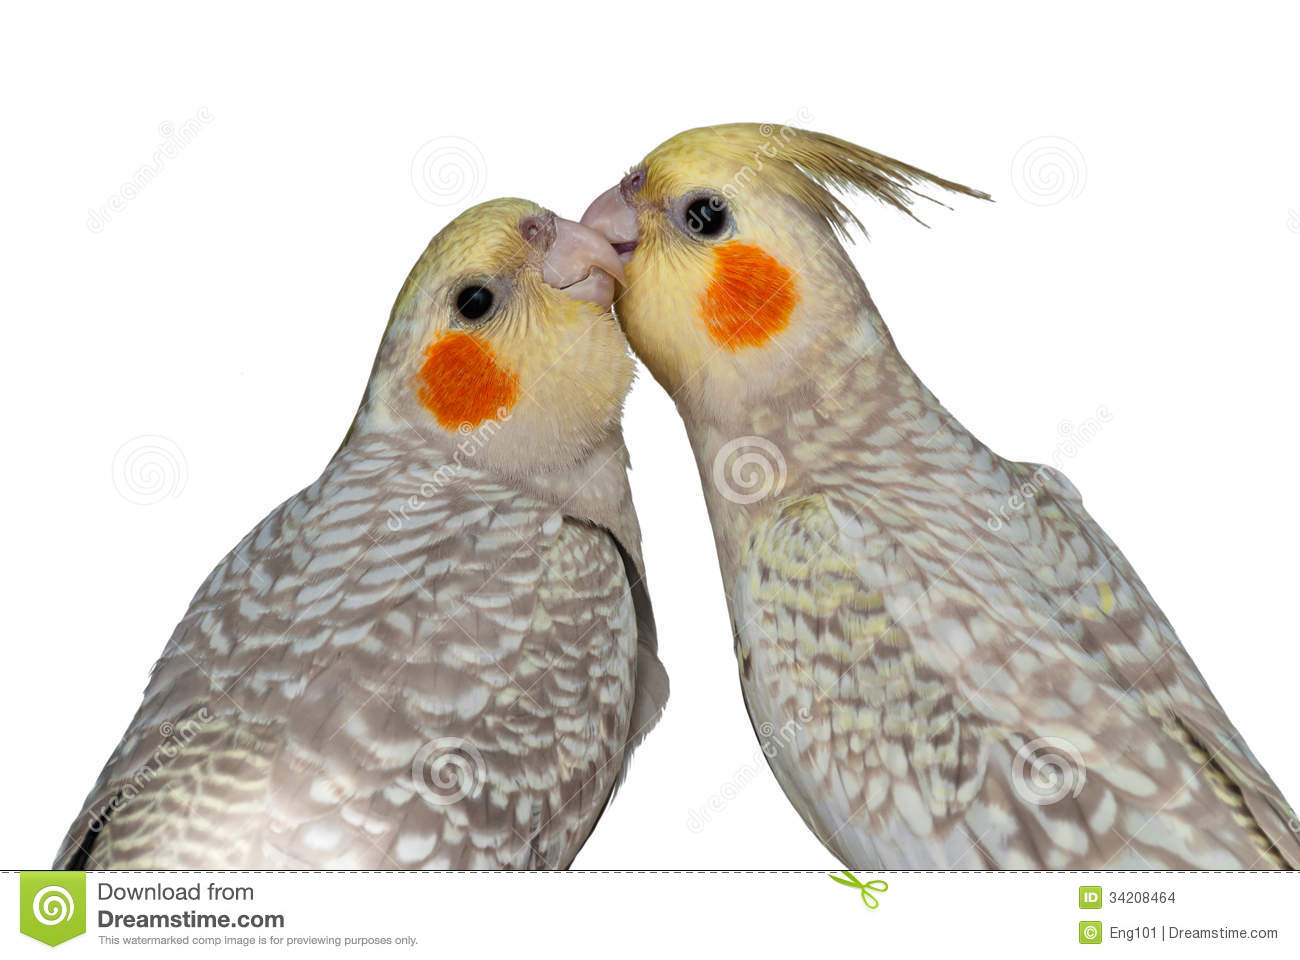 Cockatiels mutual preening stock photo. Image of isolated ...